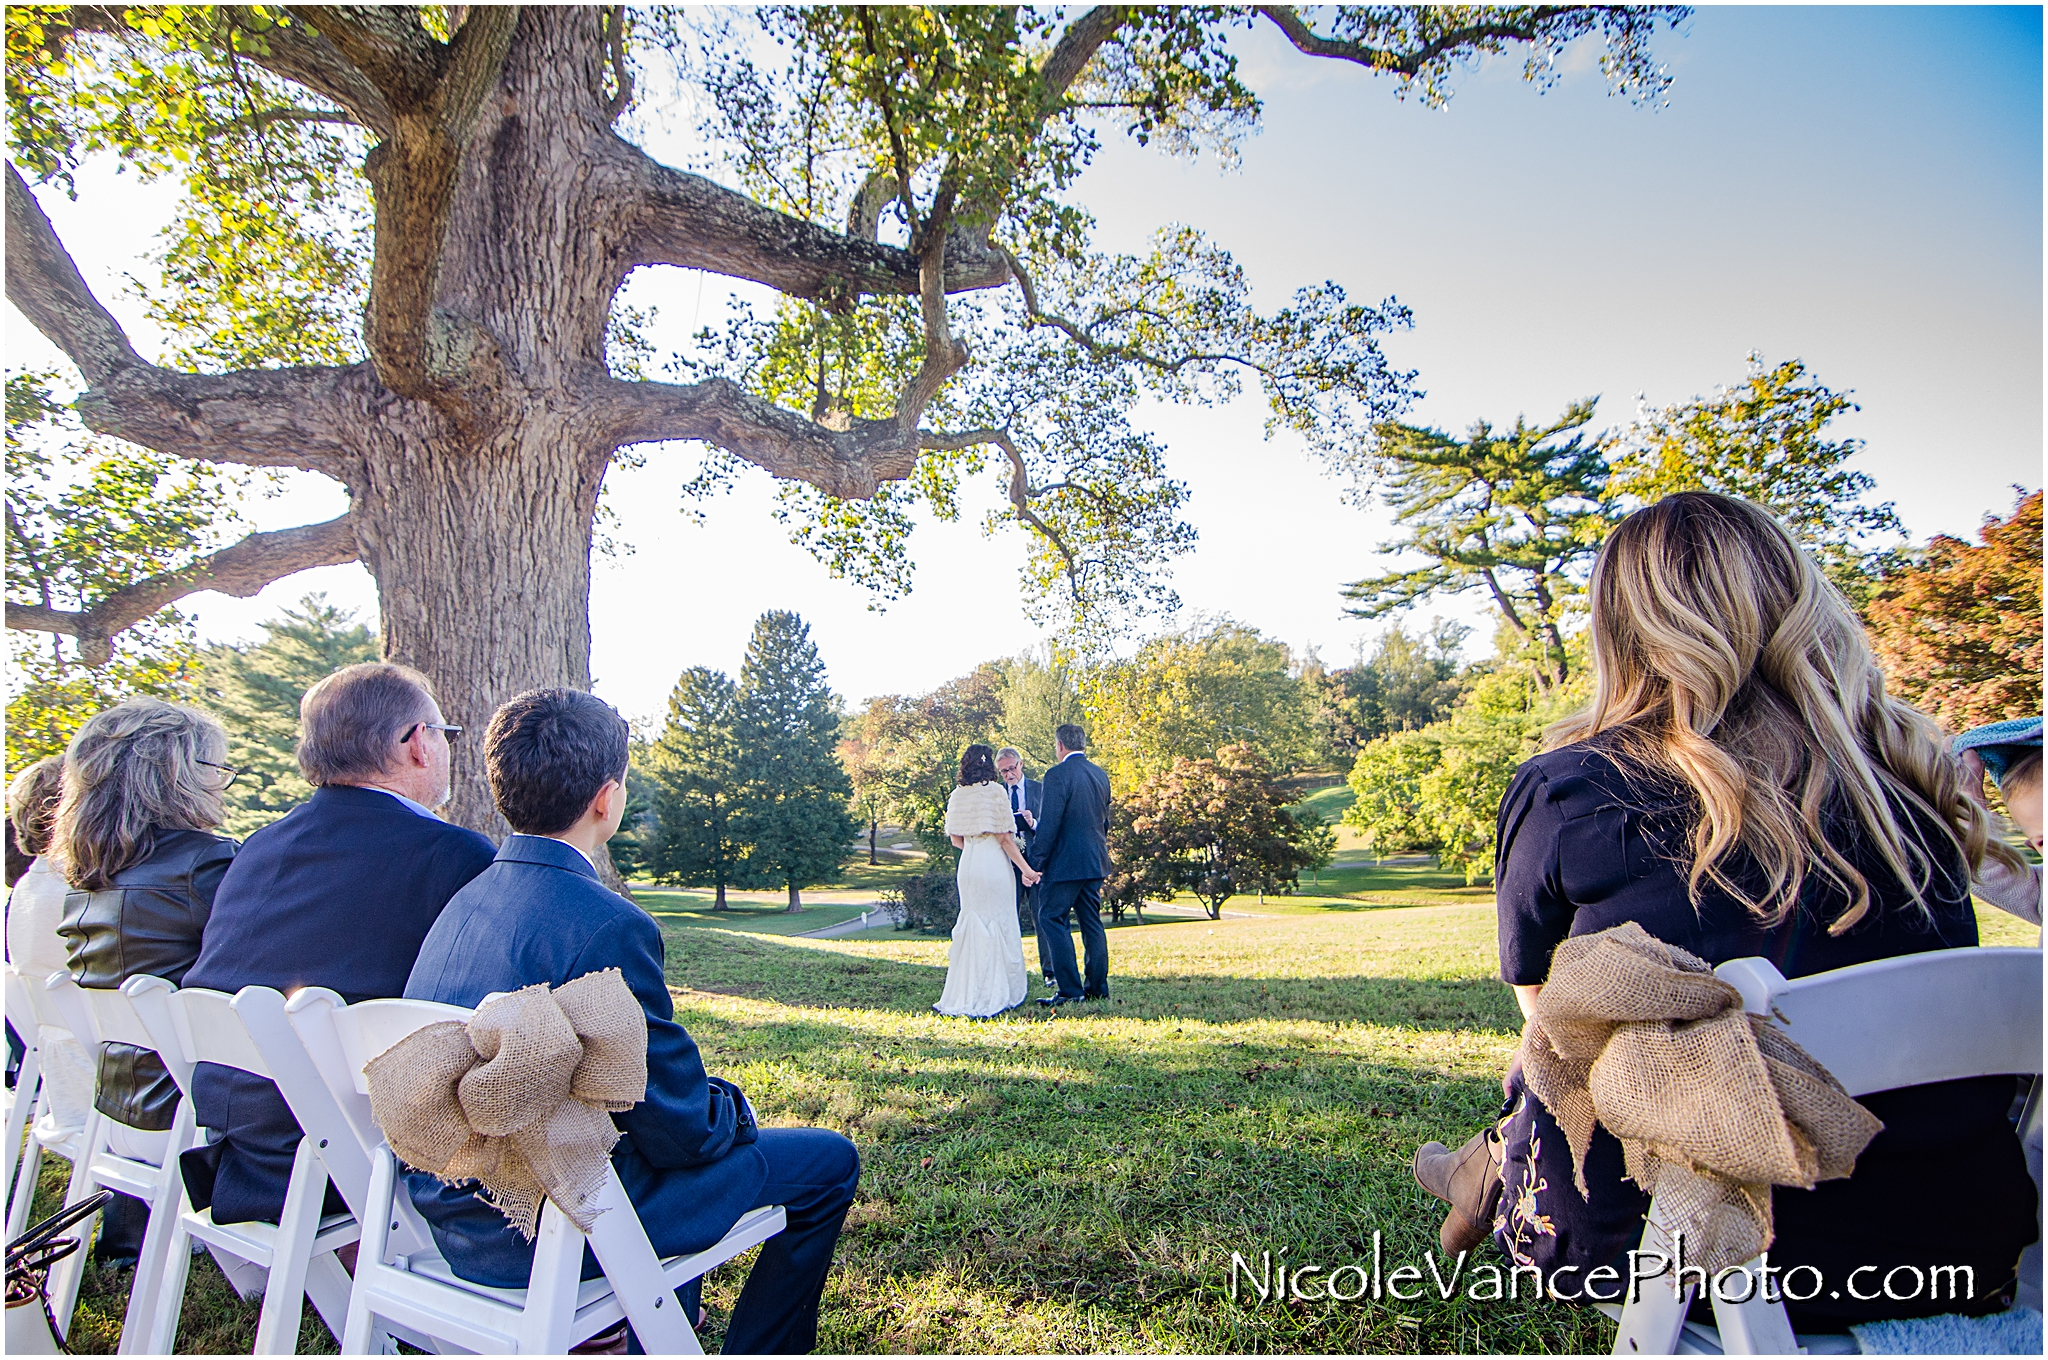 Guests enjoy the wedding ceremony at Maymont Park in Richmond, Virginia.